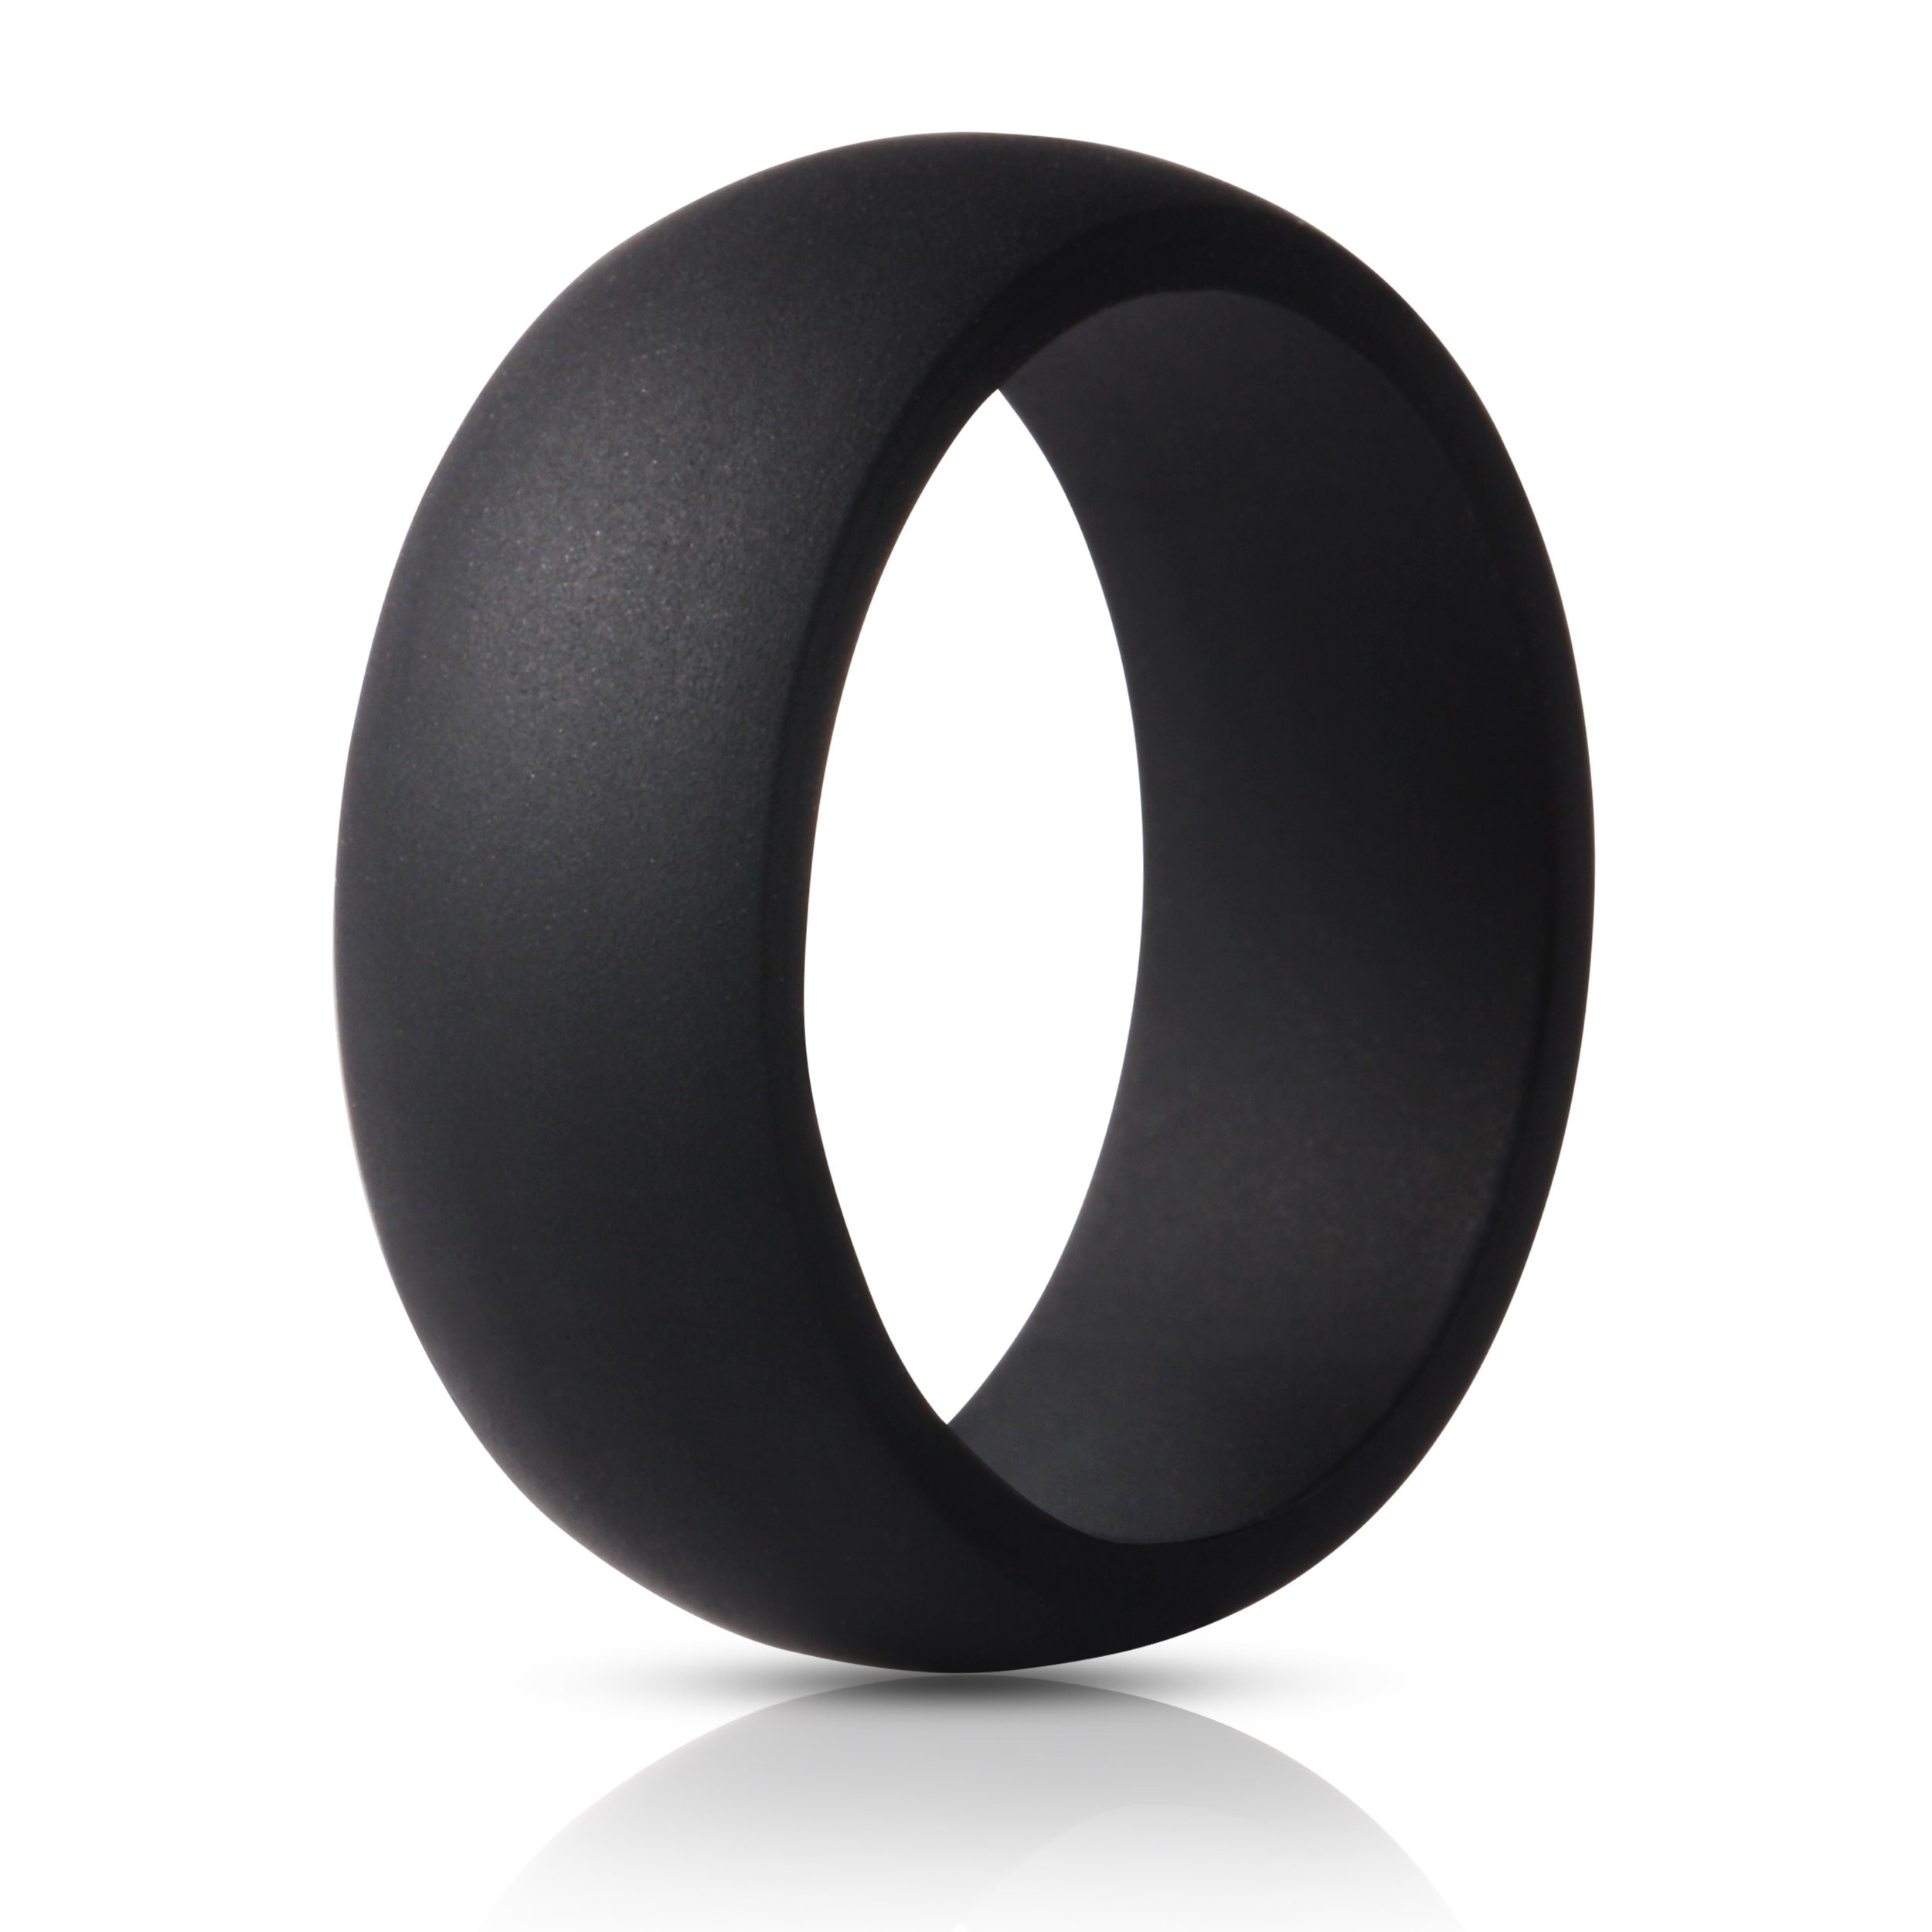 ThunderFit Silicone Ring Wedding Band for Men - 1 Ring (Black, 7.5-8 (18.2mm))